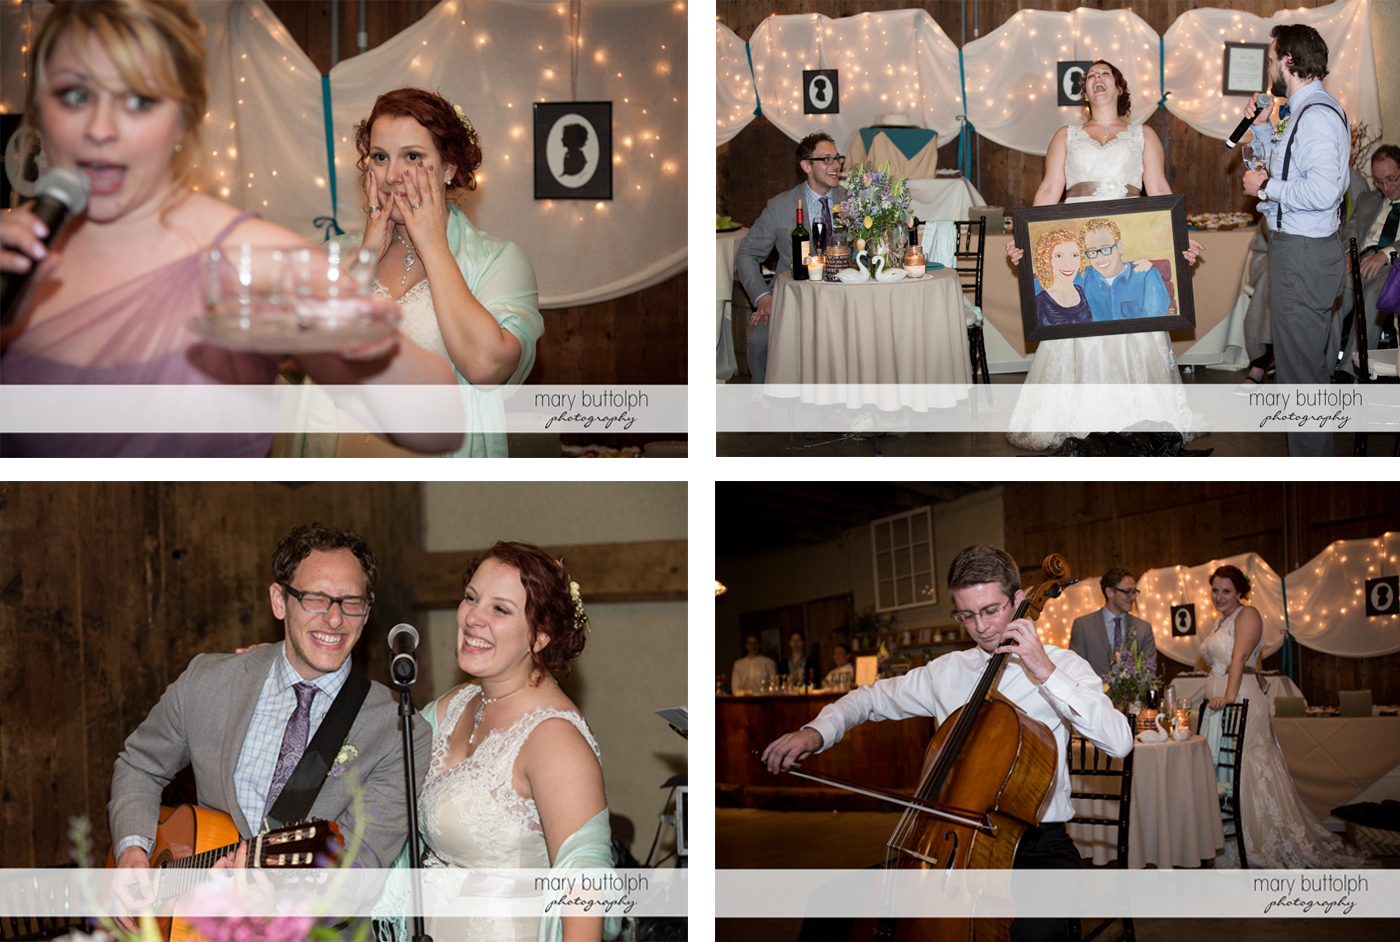 Couple having a great time at Frog Pond Bed & Breakfast Wedding